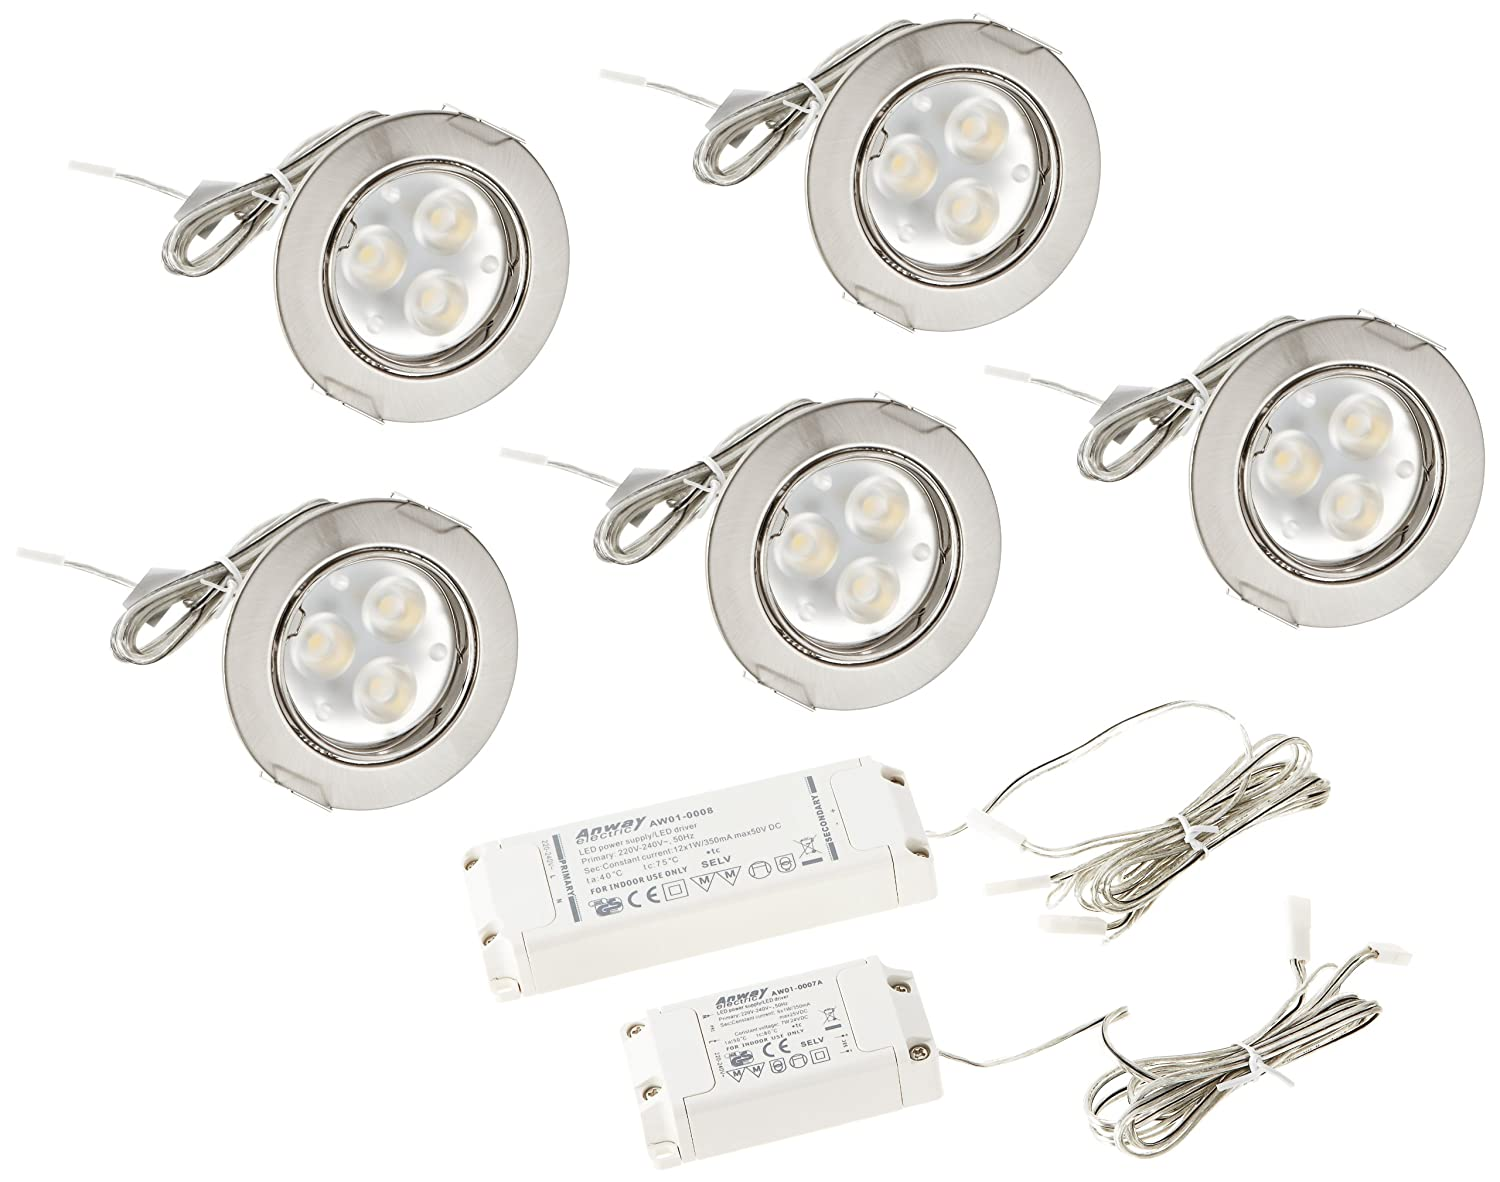 Paulmann 92518 Premium EBL Set Power Flood LED 5x3W 15VA 230V 83mm Eisen geb./Alu Zink